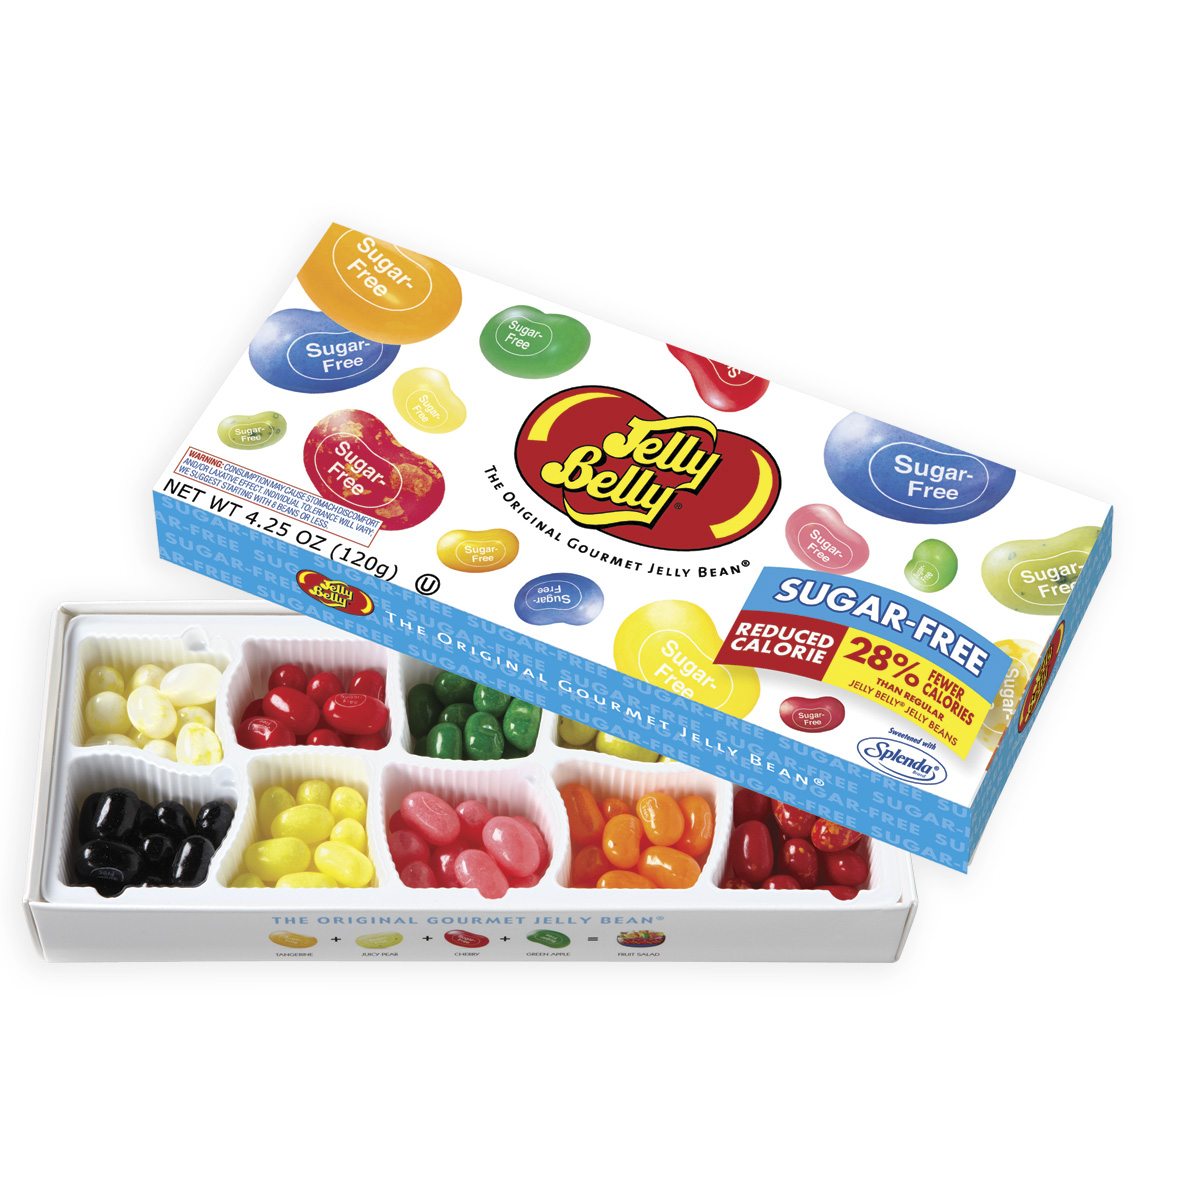 SugarFree Jelly Beans and Gummi Bears Jelly Belly Candy